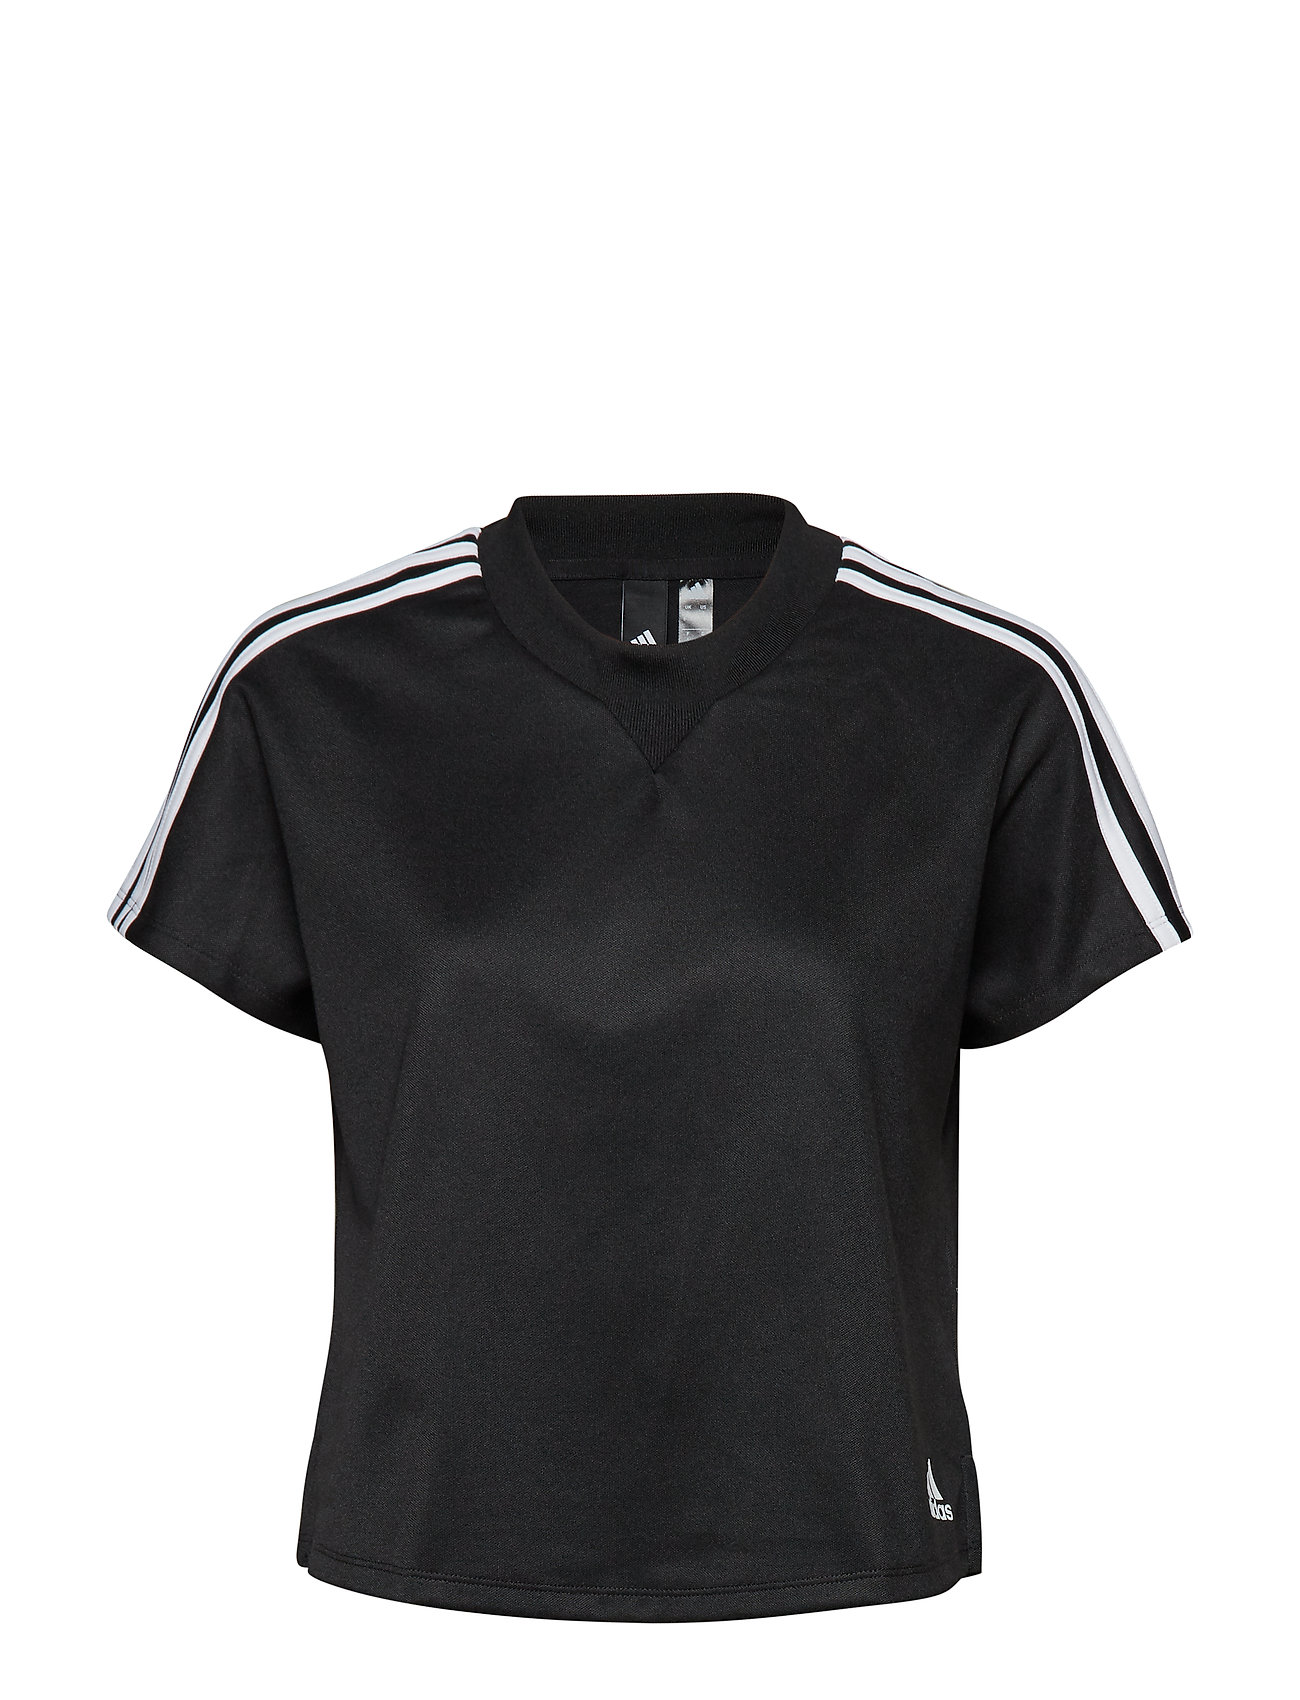 Atteetude Tee T shirt Top Blå Adidas Performance